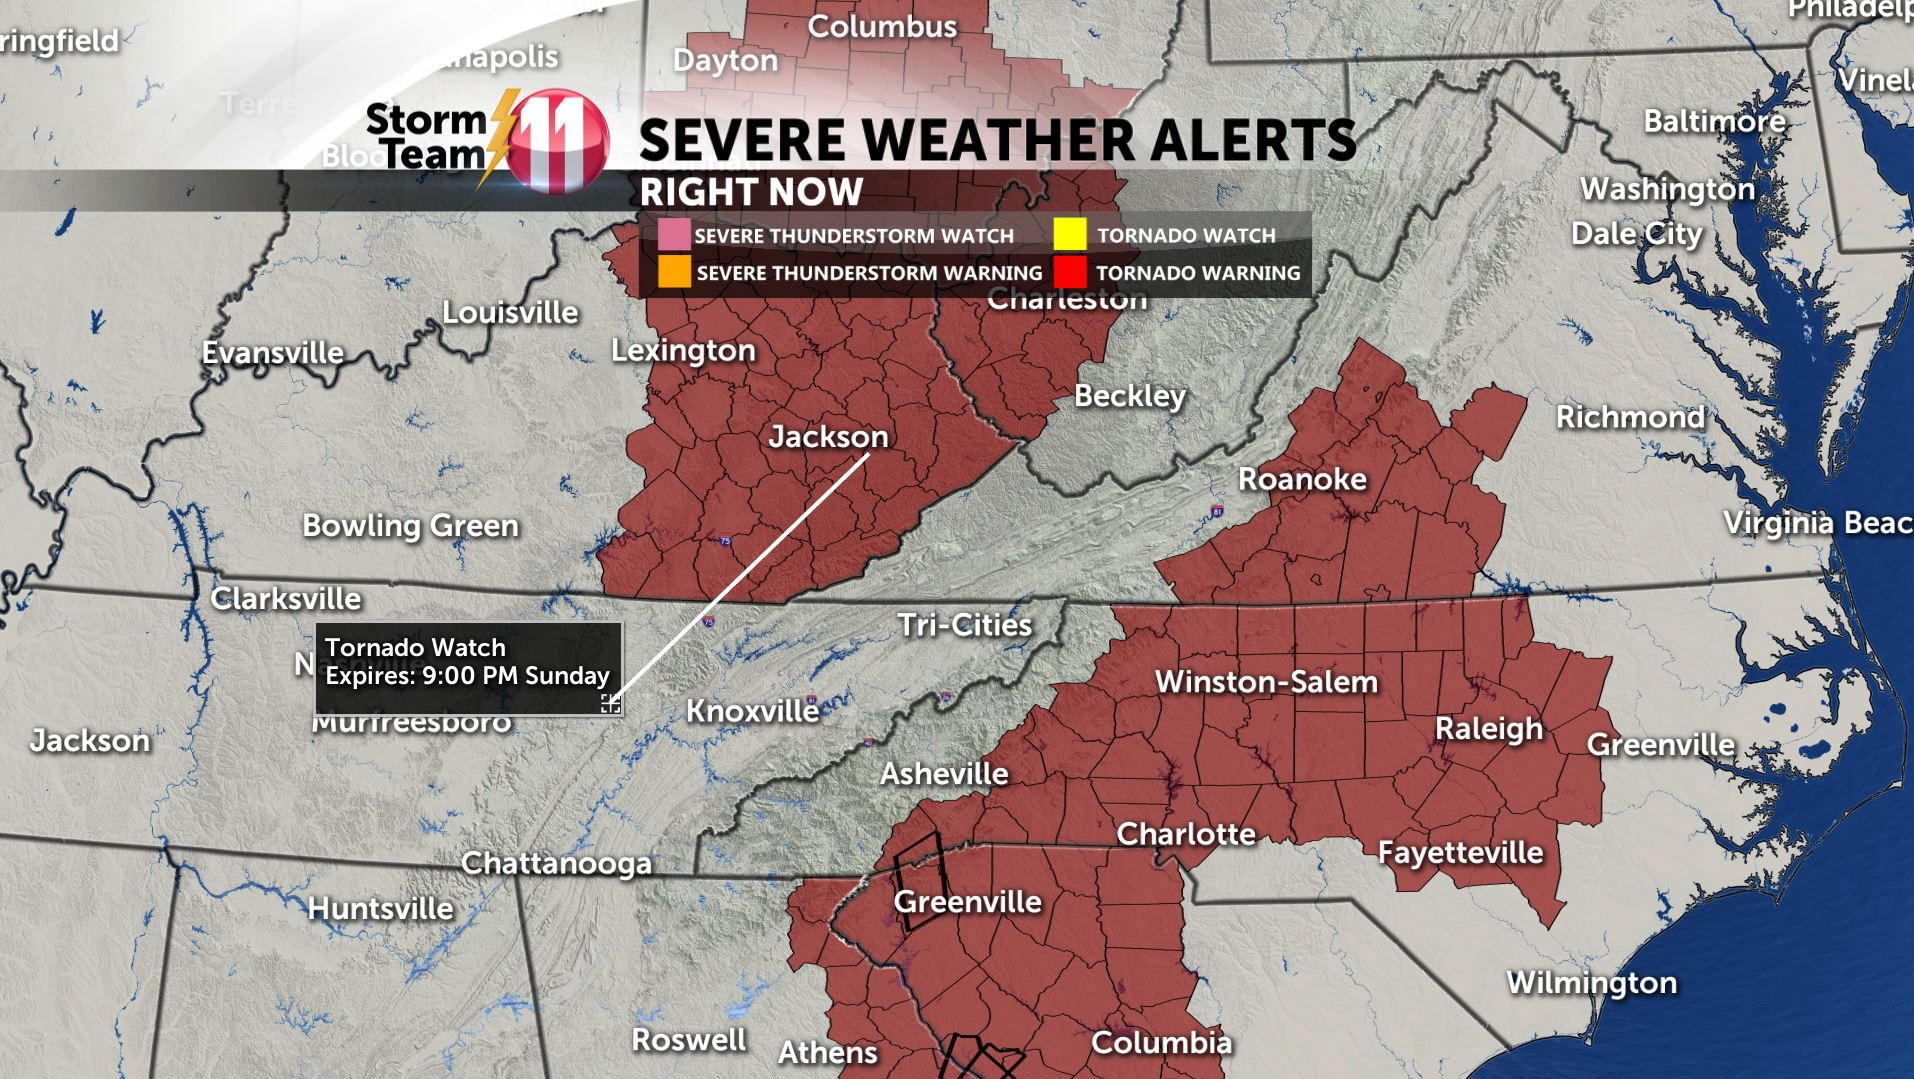 STORM TEAM 11: Severe thunderstorm watch in effect for the